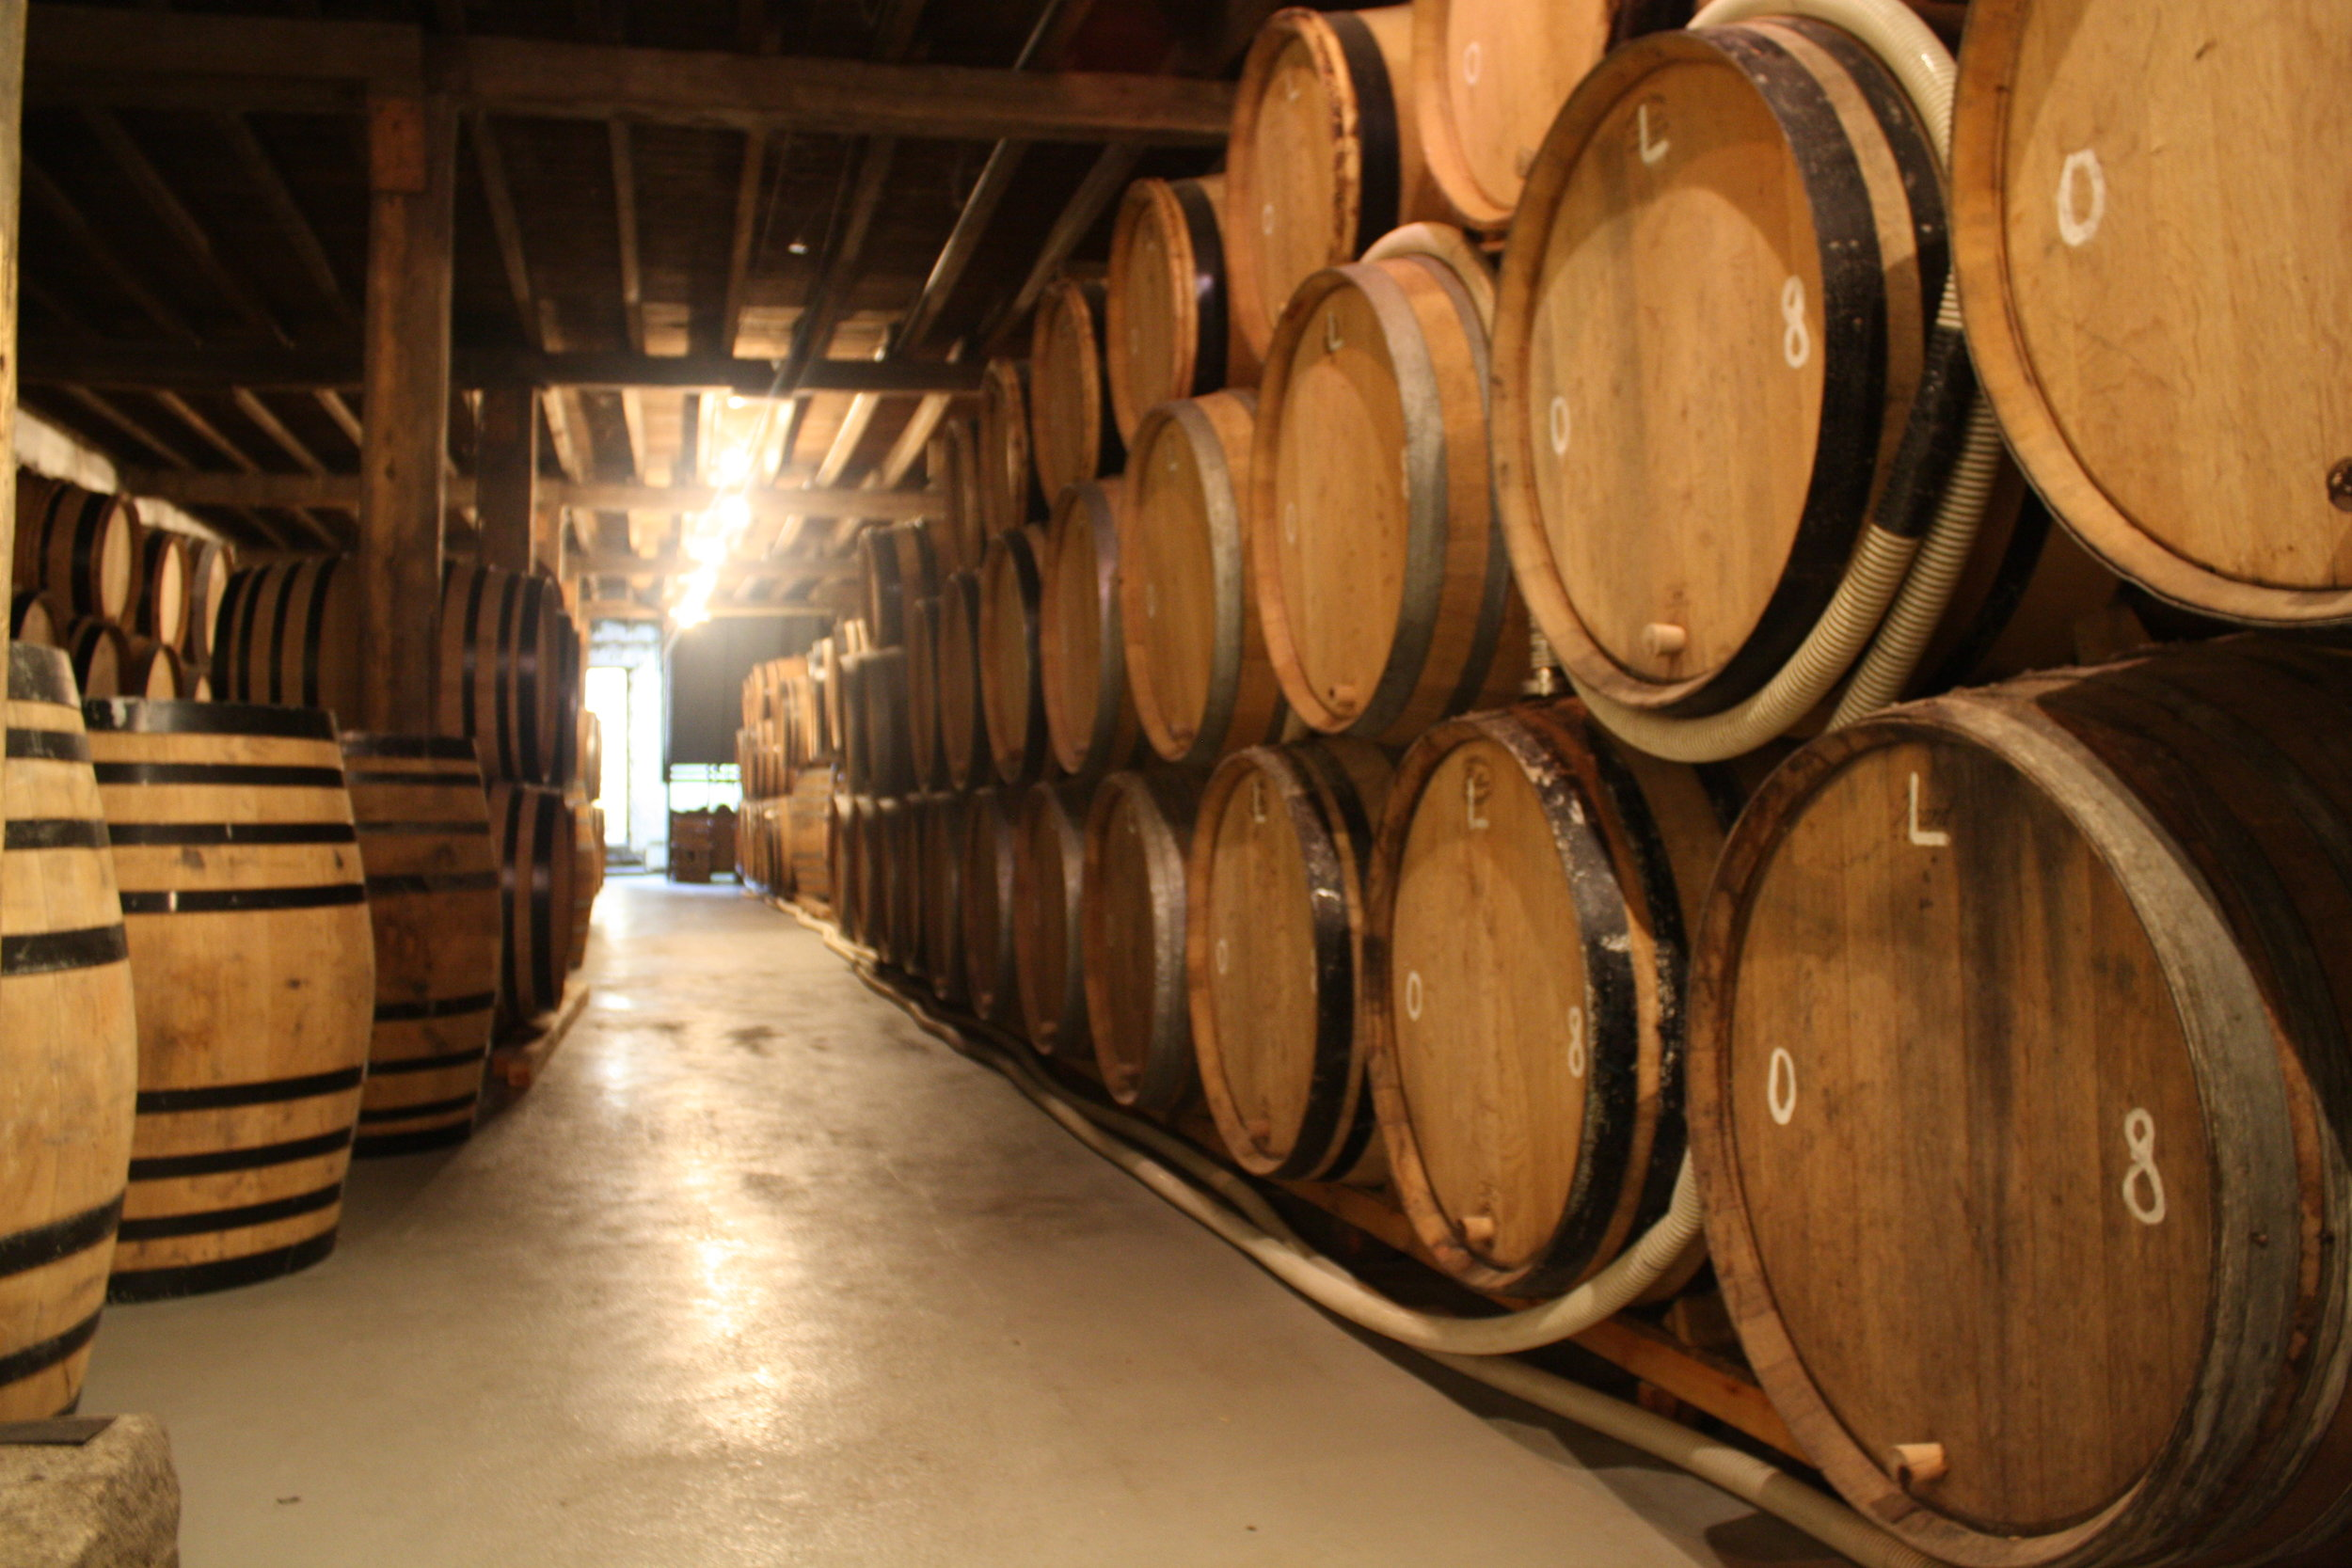 BRASSERIE CANTILLON     https://www.cantillon.be     Regular tours happening most days. Well worth a visit to see the magical process behind some of the great the sour beers, also get a drink after the tour! Only a 10 minute walk from Moeder Lambic but get directions. A must visit in Brussels!